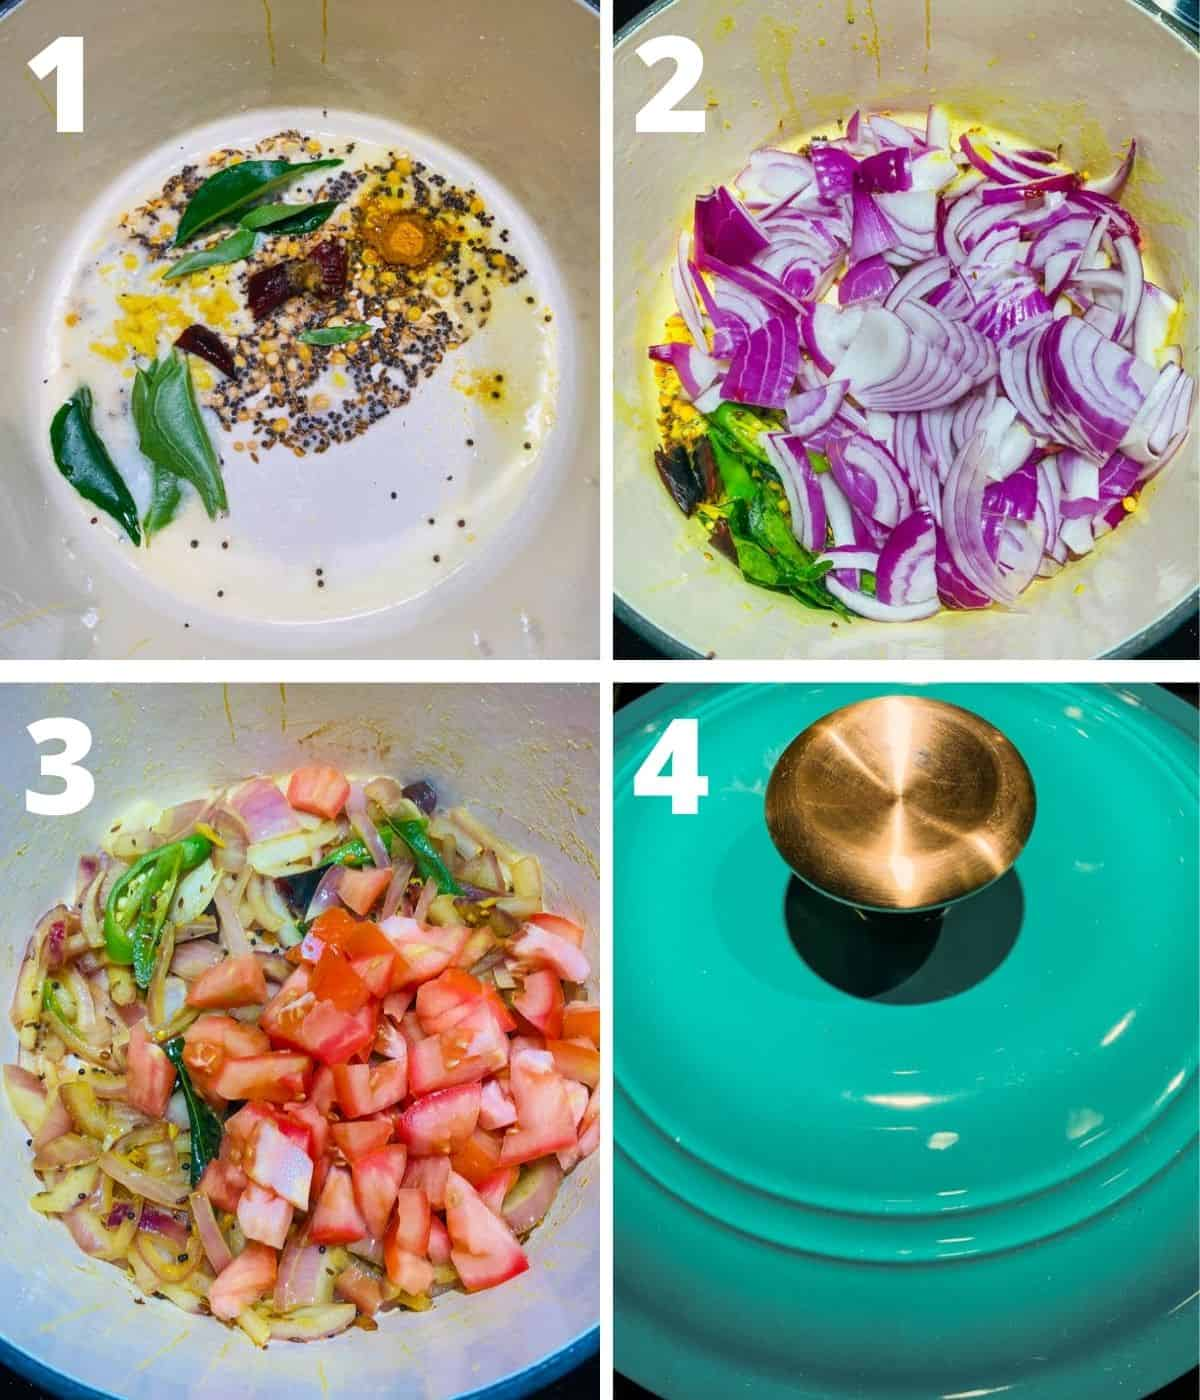 This image shows the collage of step by step pictures for making bombay chutney. This image shows the first 4 steps until cooking the tomatoes with lid closed.